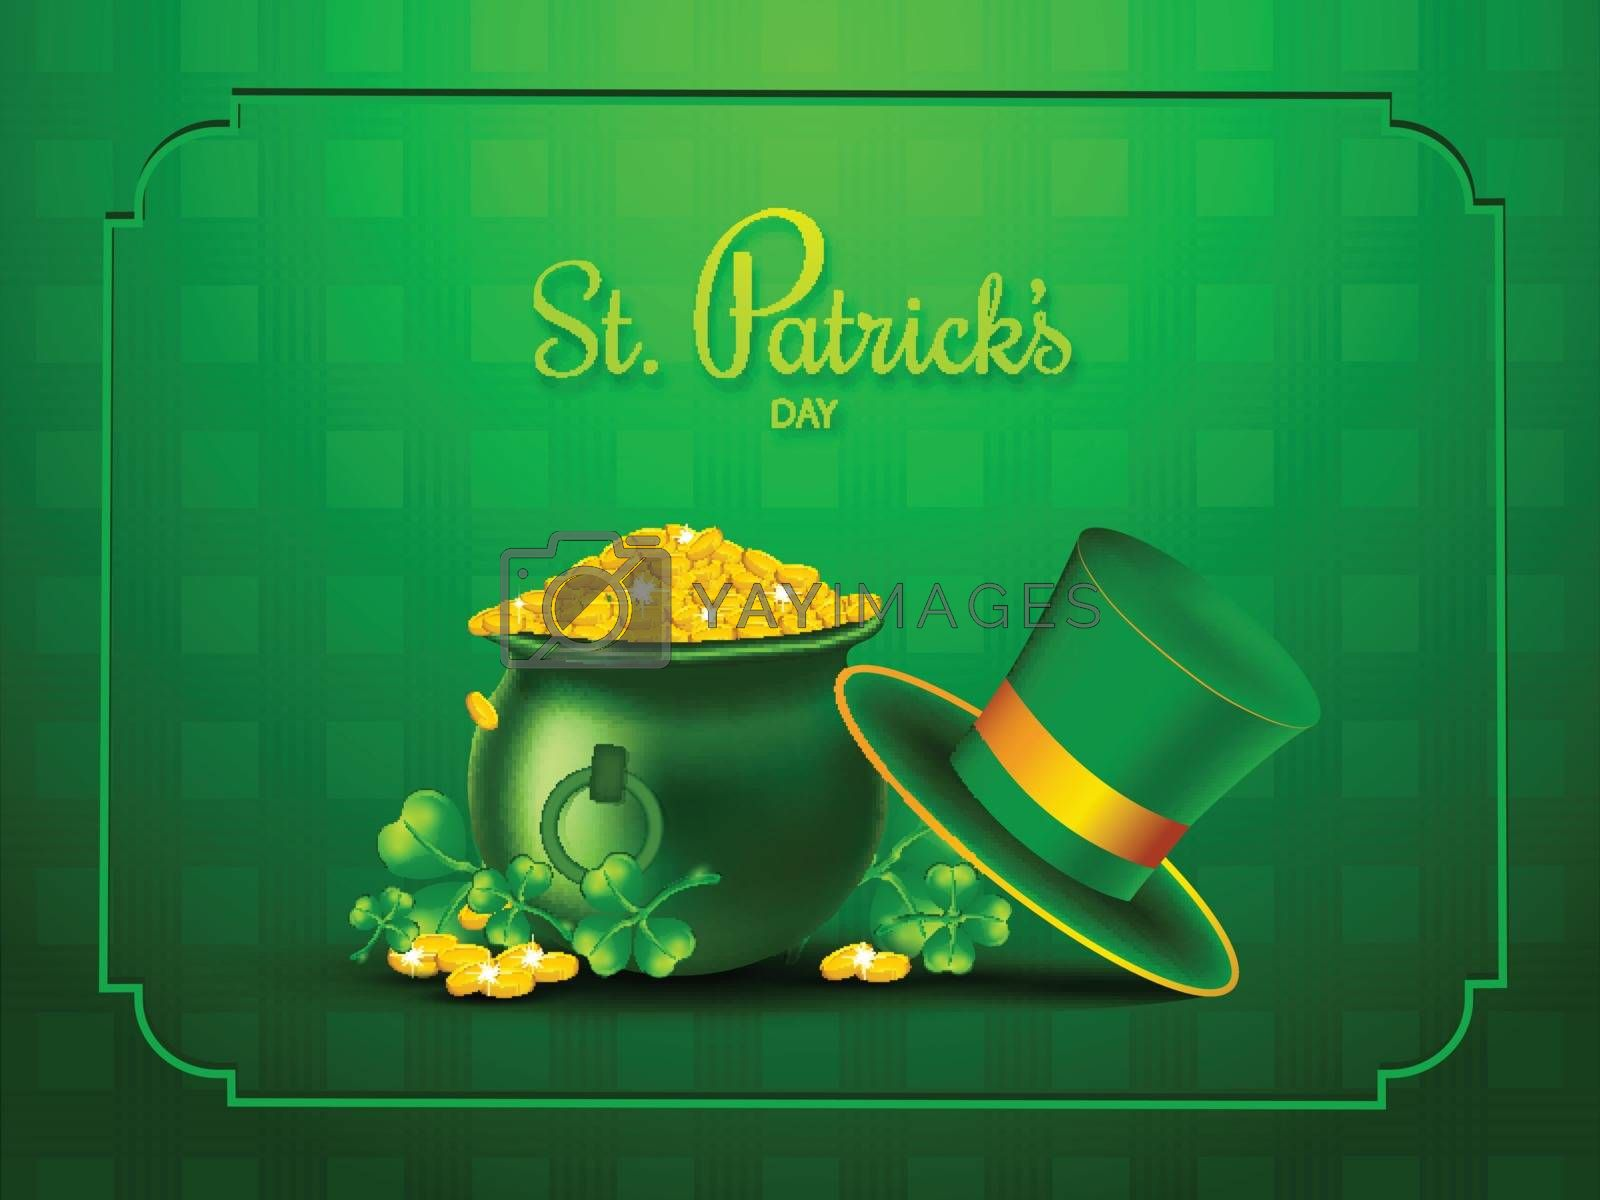 Royalty free image of St. Patrick's Day celebration banner design, illustration of coi by aispl